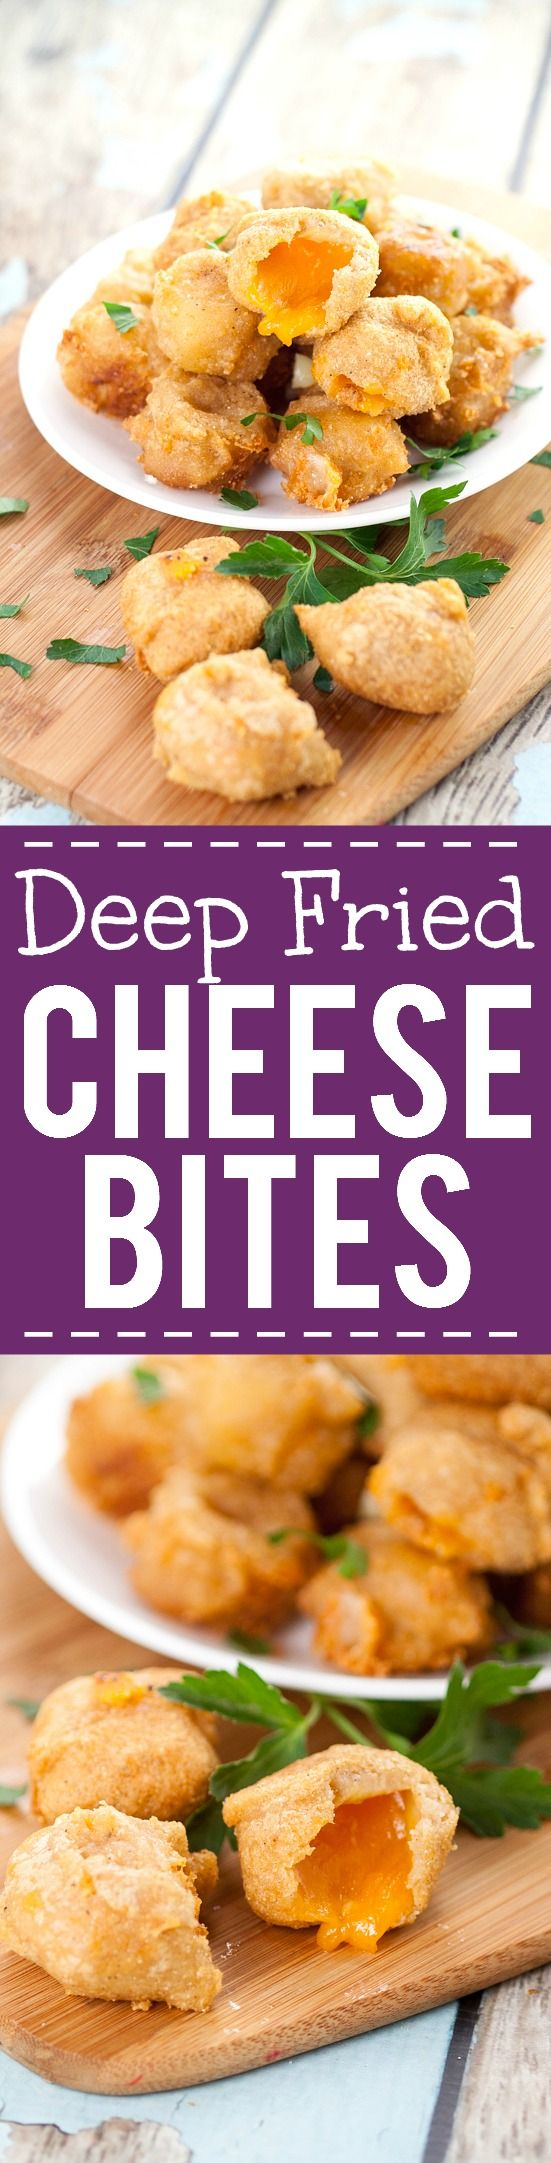 Deep Fried Cheese Bites recipe - Crispy, cheesy Deep Fried Cheese Bites in a…